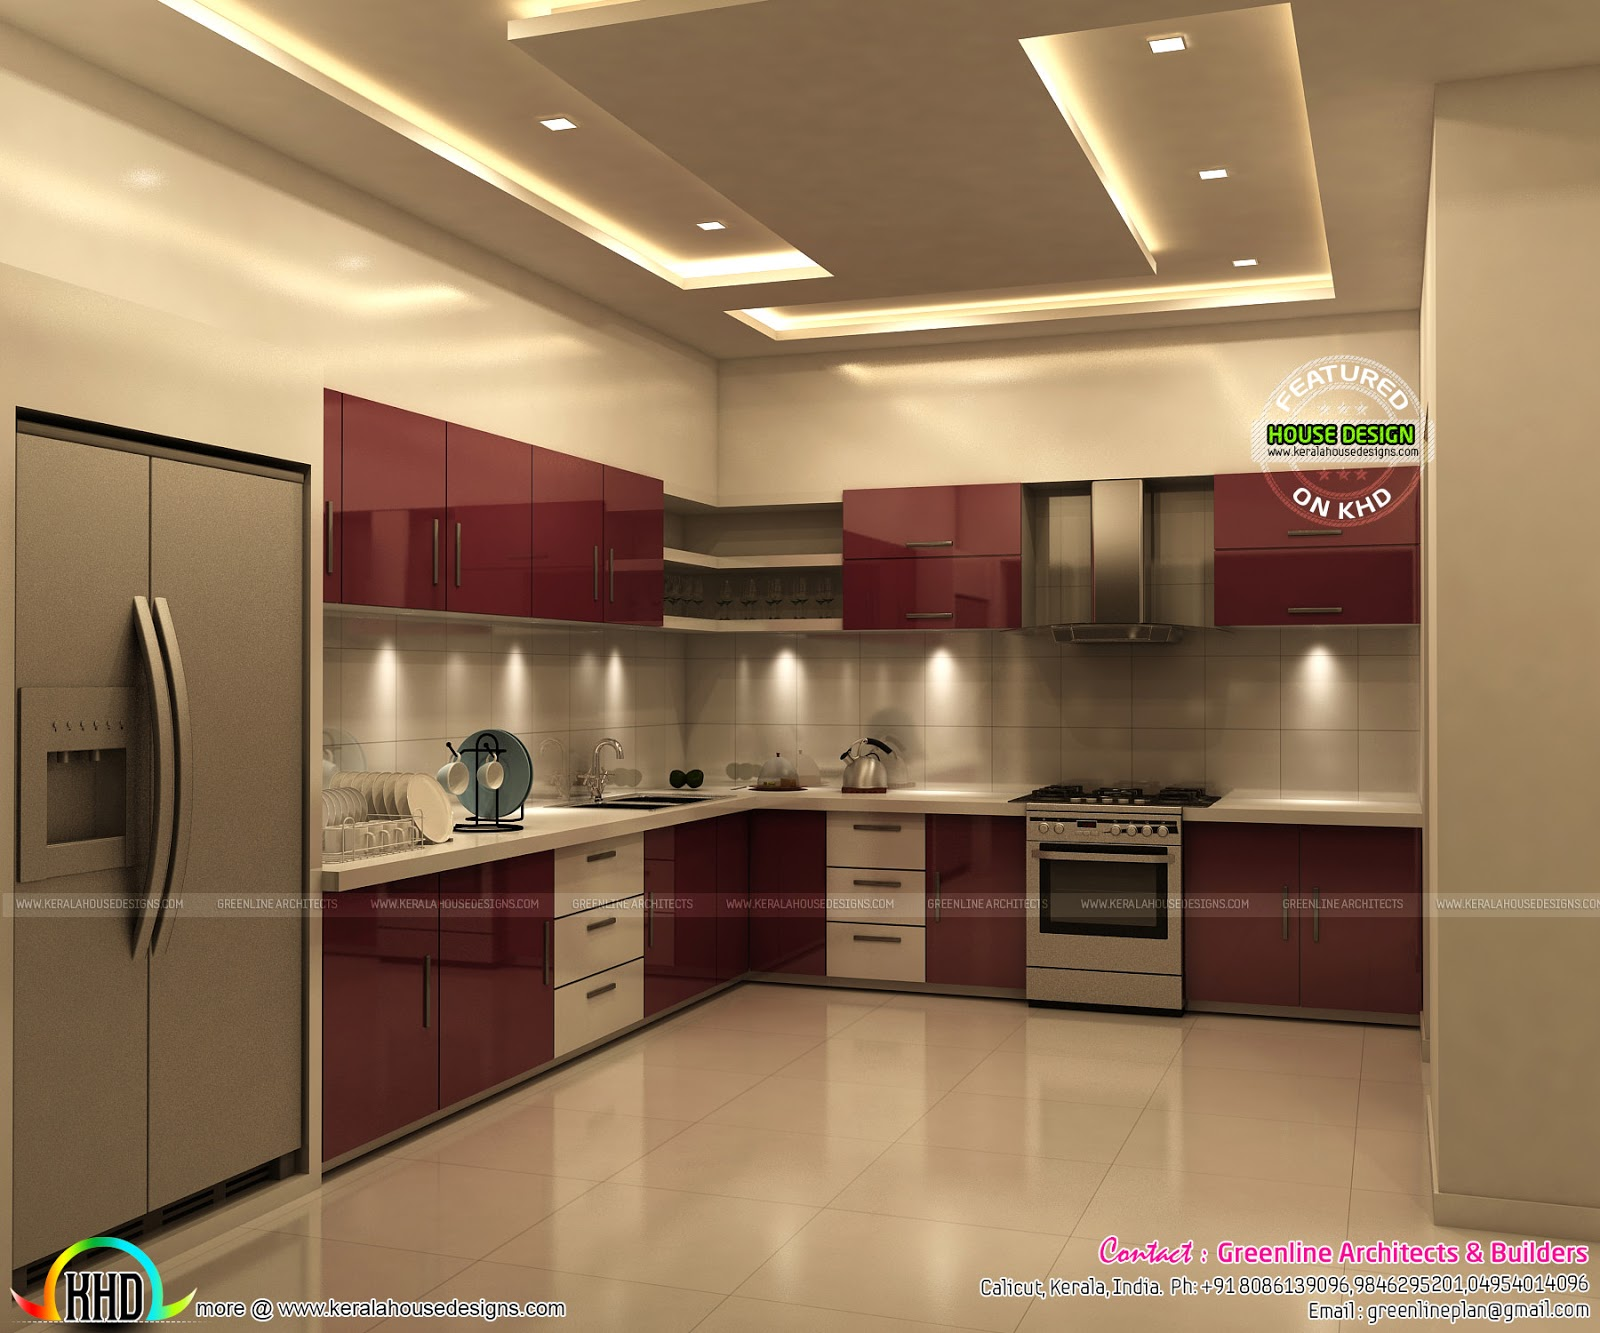 Superb kitchen and bedroom interiors kerala home design for Interior designers in